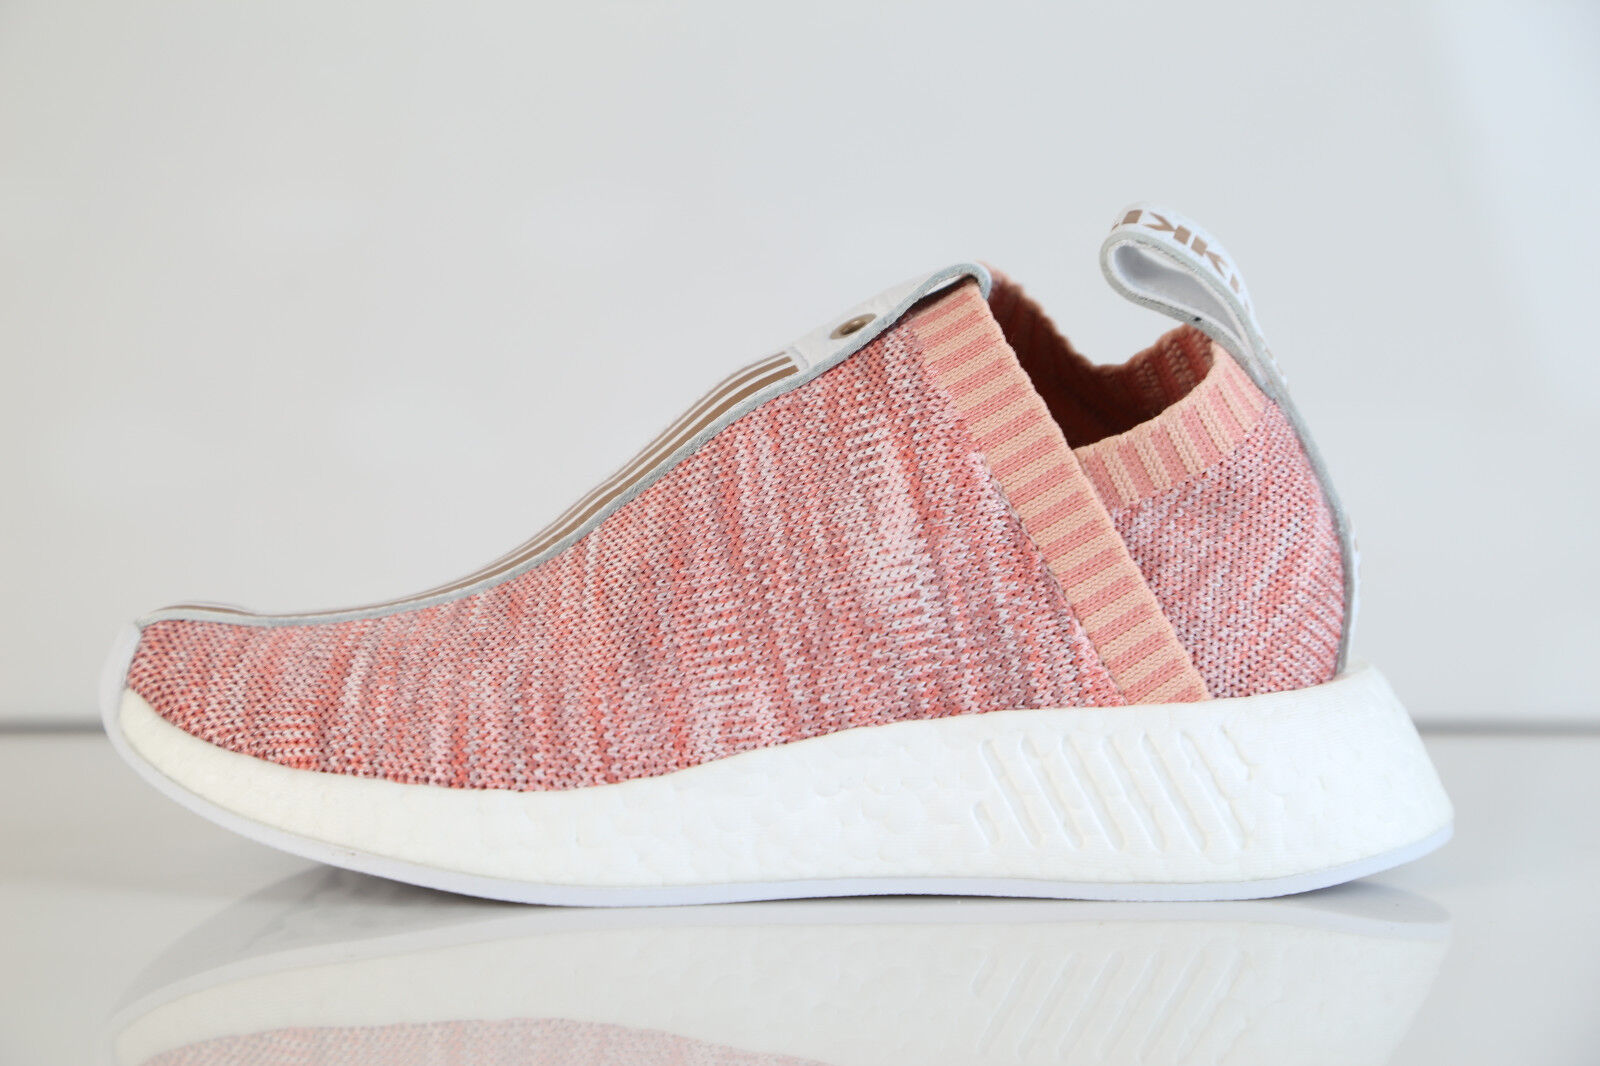 Adidas X Kith X Naked Naked Naked Consortium City Sock NMD CS2 PK rosa BY2596 5-12 boost rf 3c21f4